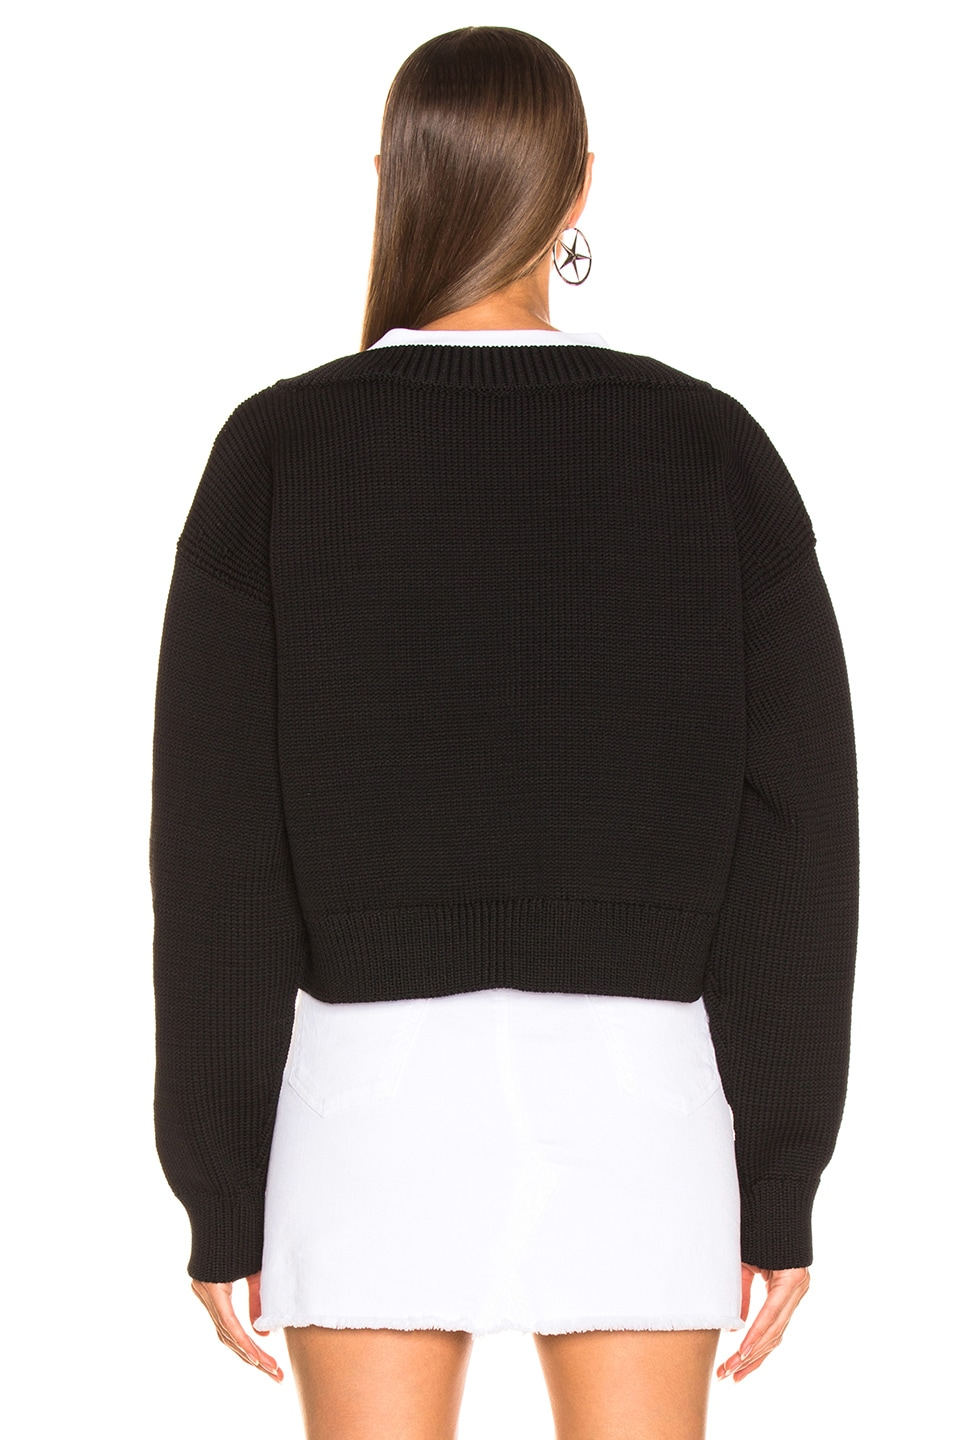 Image 3 of T by Alexander Wang Mix Media Crewneck Sweater in Black